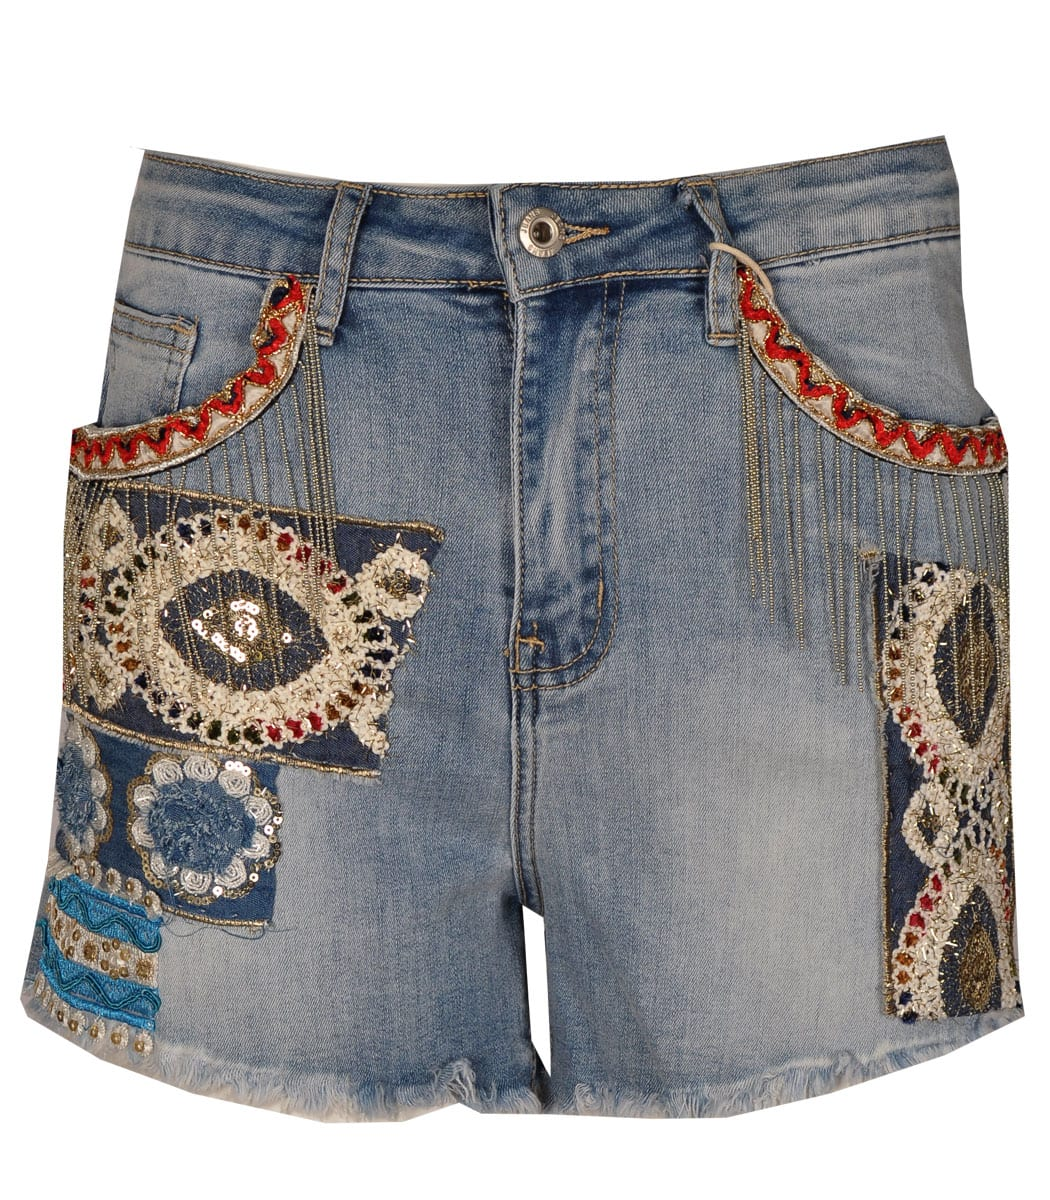 Chain detail embroidered shorts